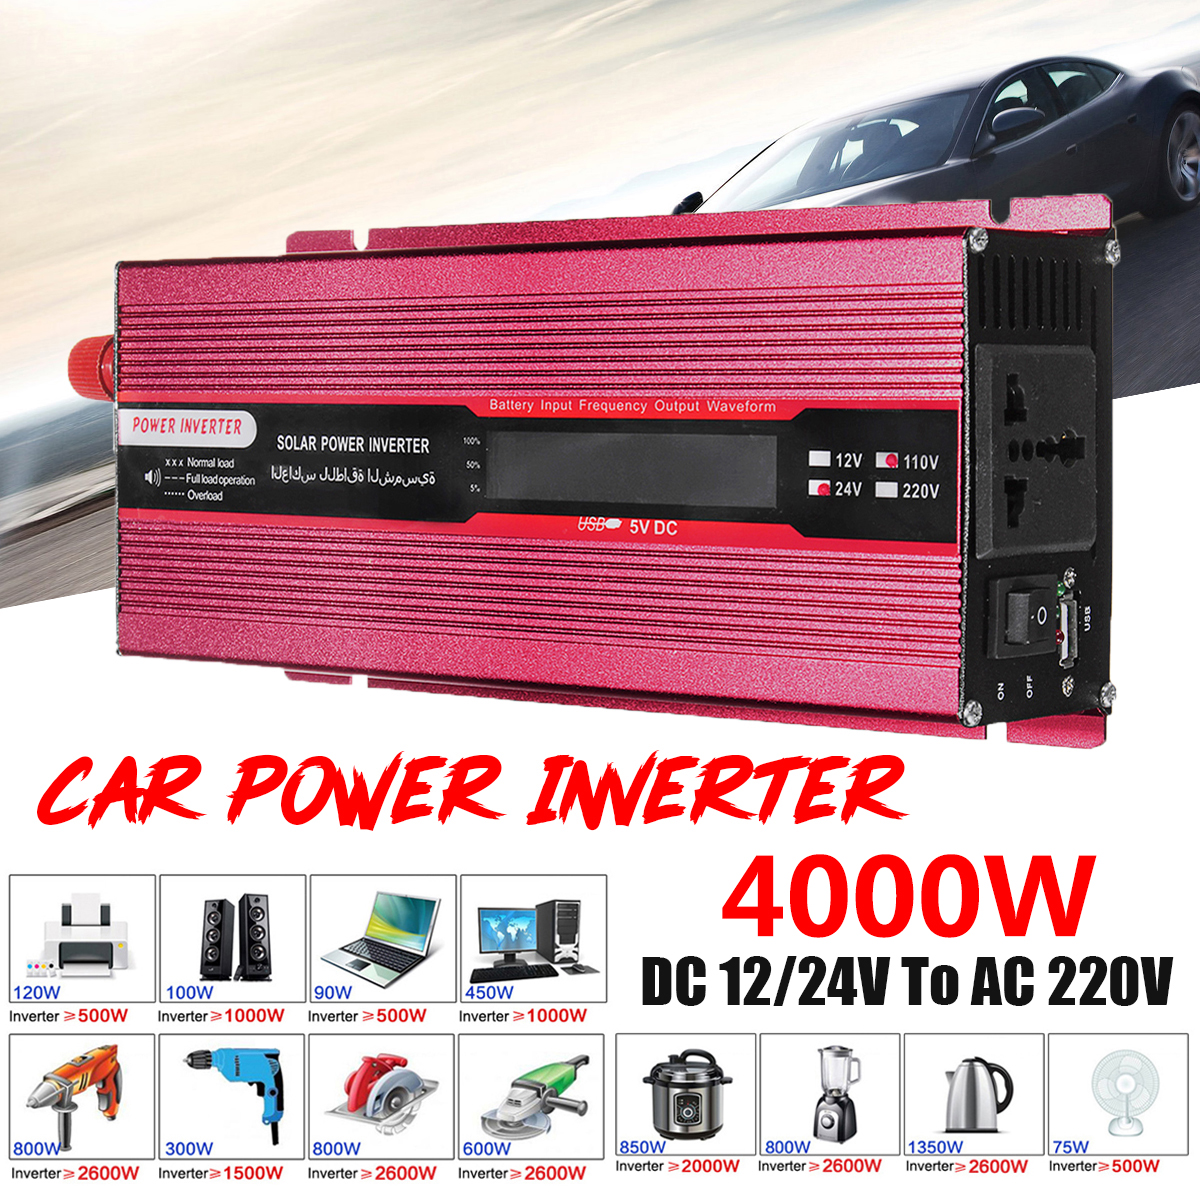 Efficiency Car Power Inverter PEAK 4000W 12/24V To AC 220/110V USB Modified Sine Wave Converter Transformer Voltage Display тройник fusitek нр 32 1 ft04108